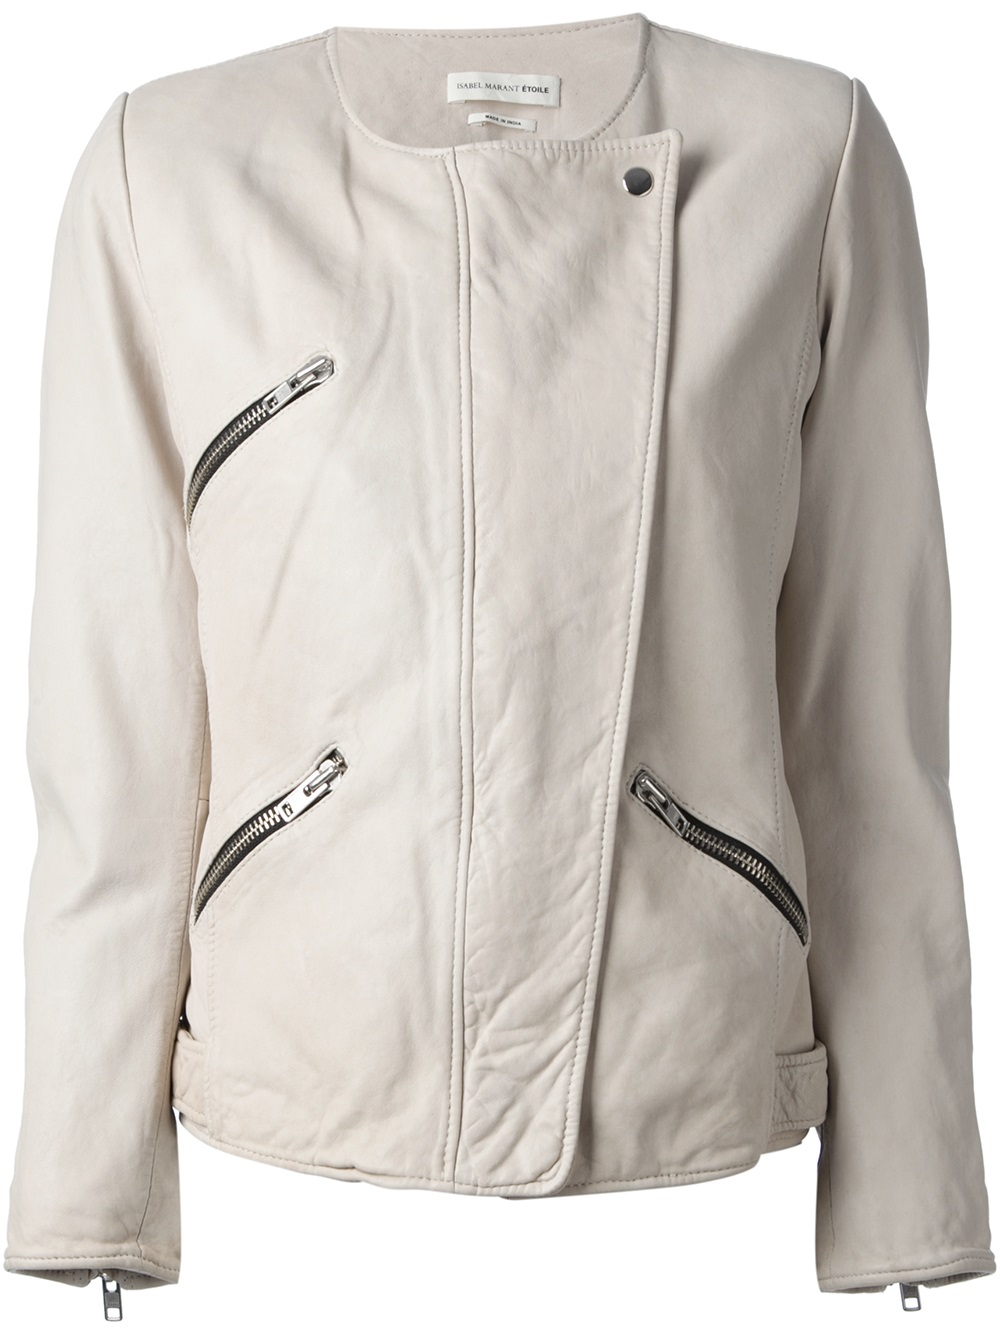 isabel-marant-etoile-beige-classic-biker-jacket-product-1-18064435-3-064142191-normal.jpeg